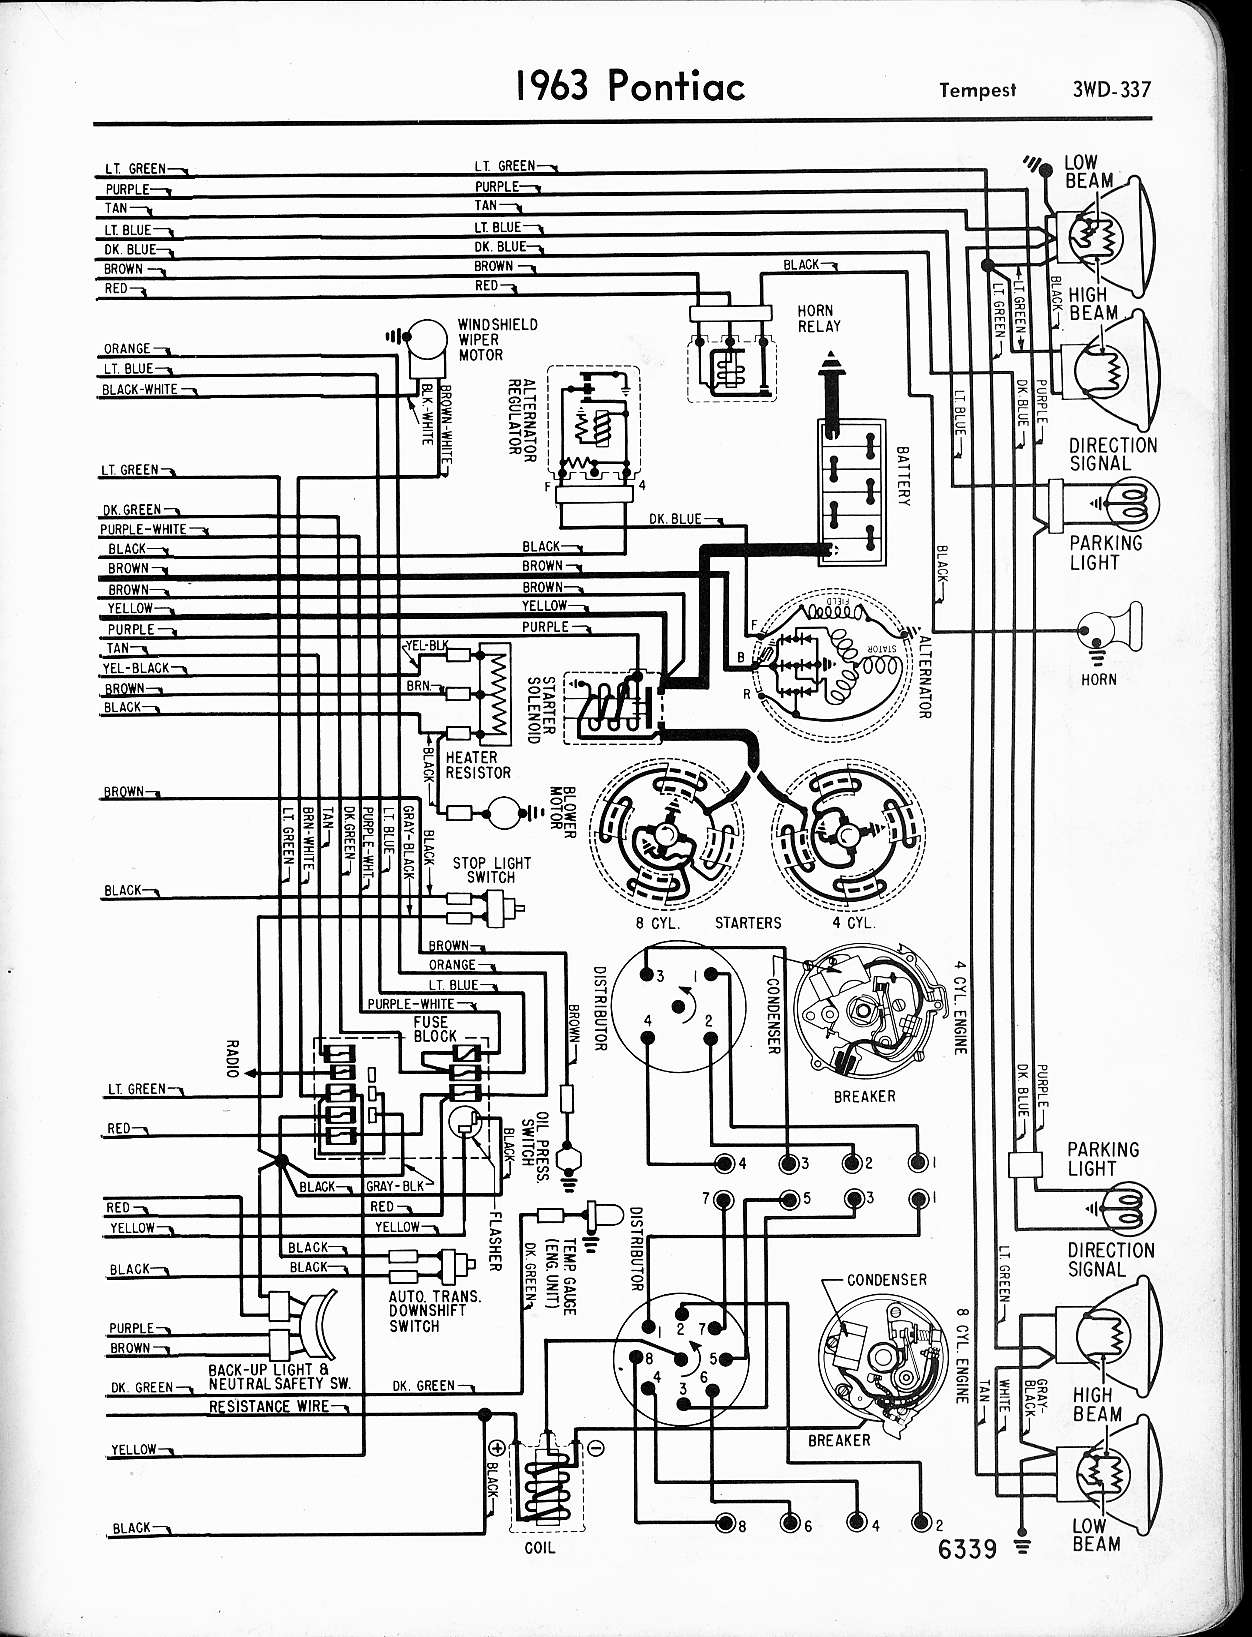 2003 Vibe Fuse Box Diagram Wiring Libraries 1967 Pontiac Simple Diagram1966 Gto Blog